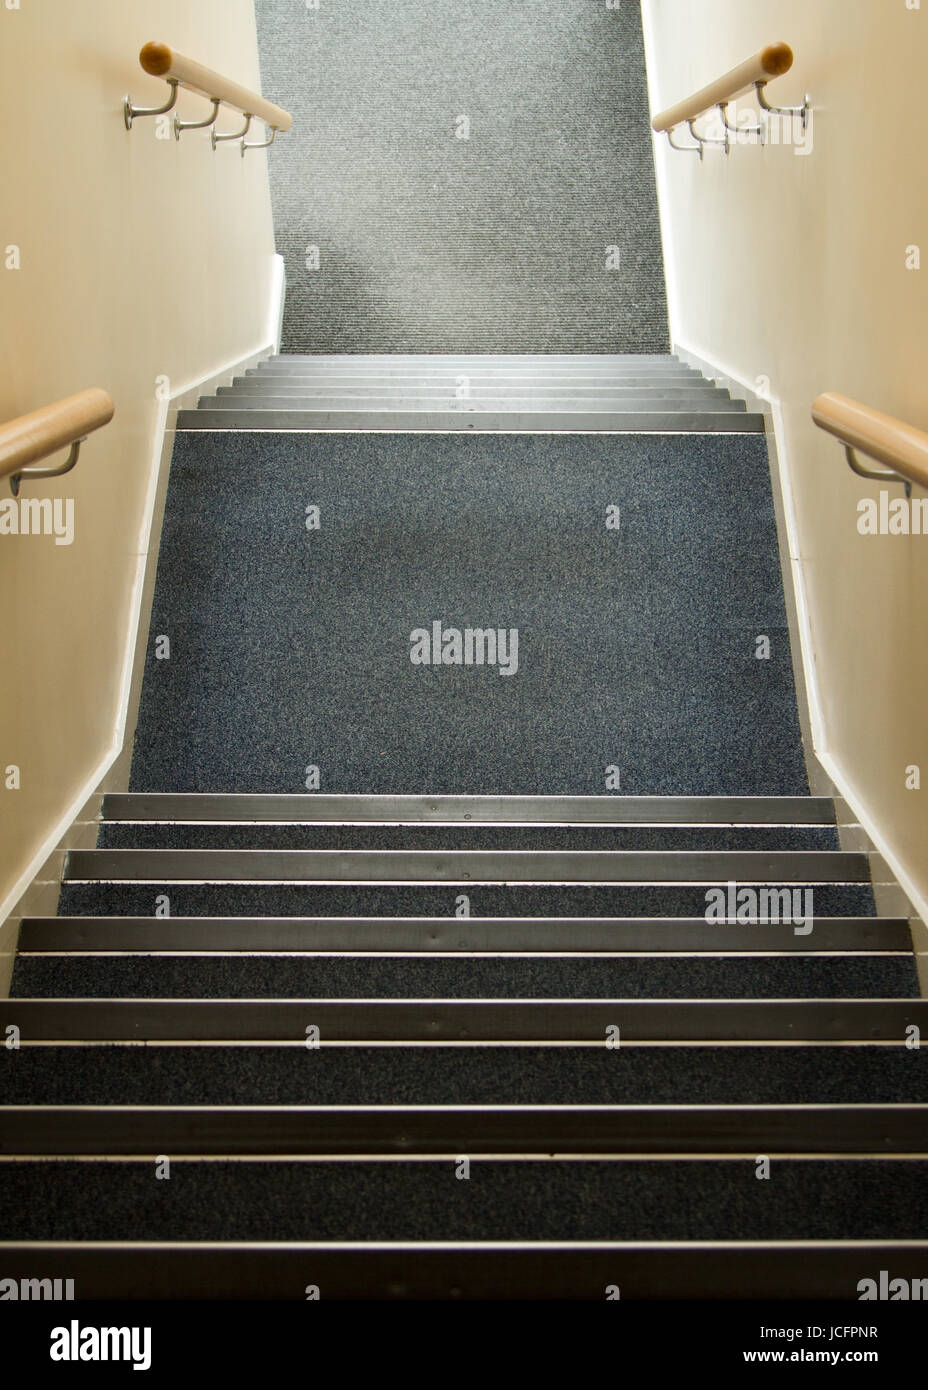 Stairway Going Down In Office Block With Hand Rails And Blue   Carpet Down Middle Of Stairs   Stair Rods   Wood   Hardwood   Steps   Laminate Flooring